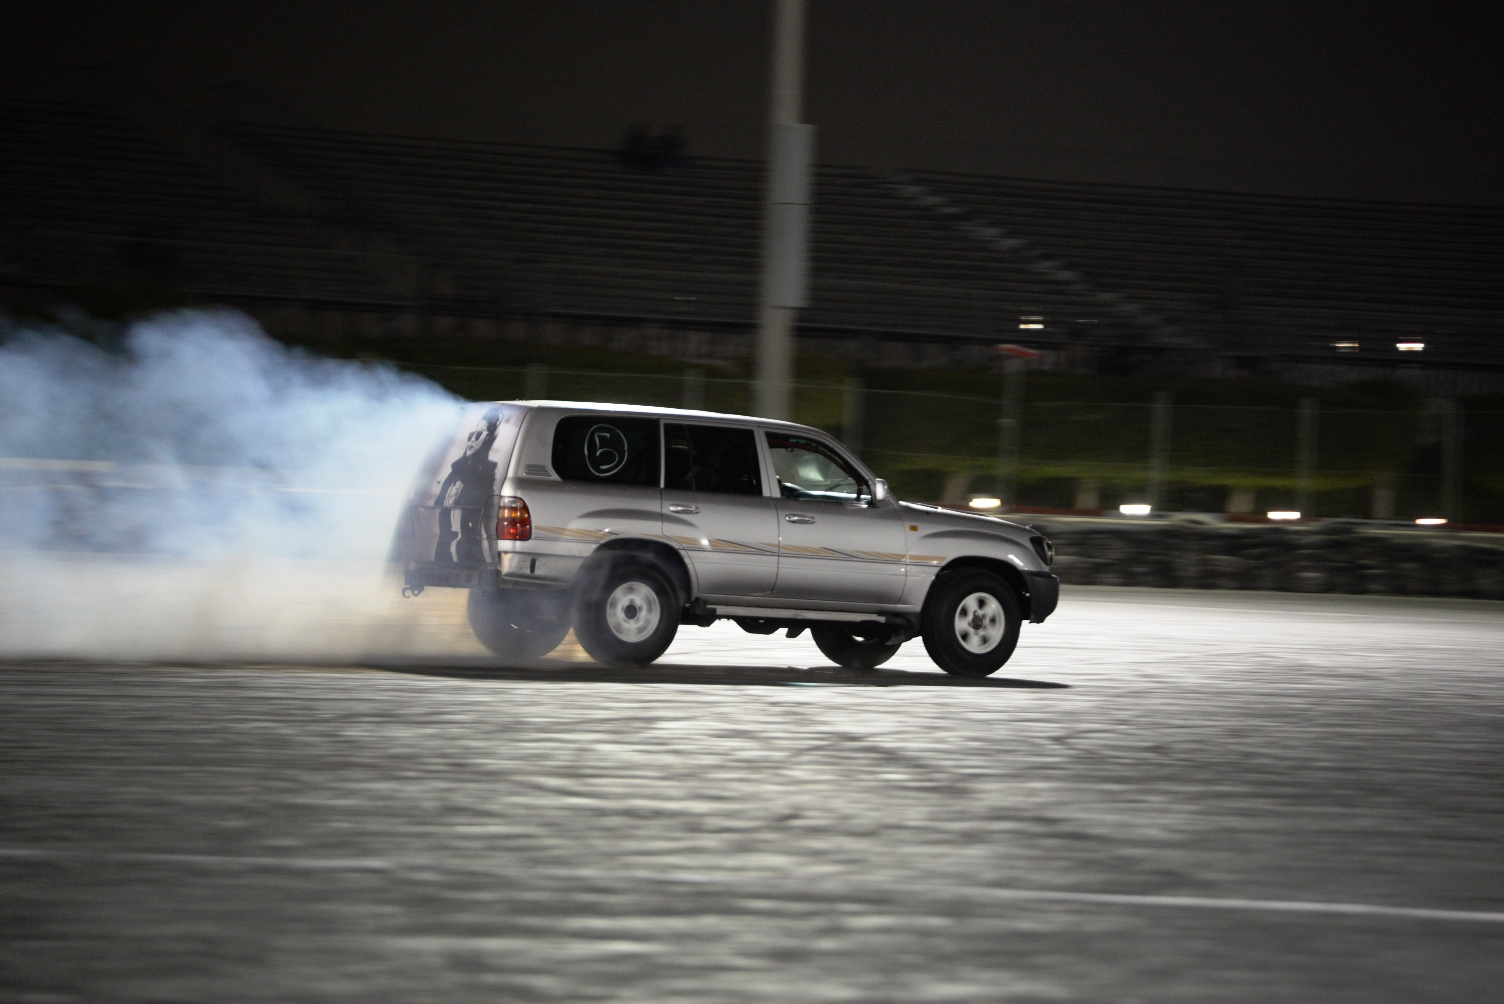 2018-2019 4X4 Freestyle Drifting - Oprn Track Day - November (39)